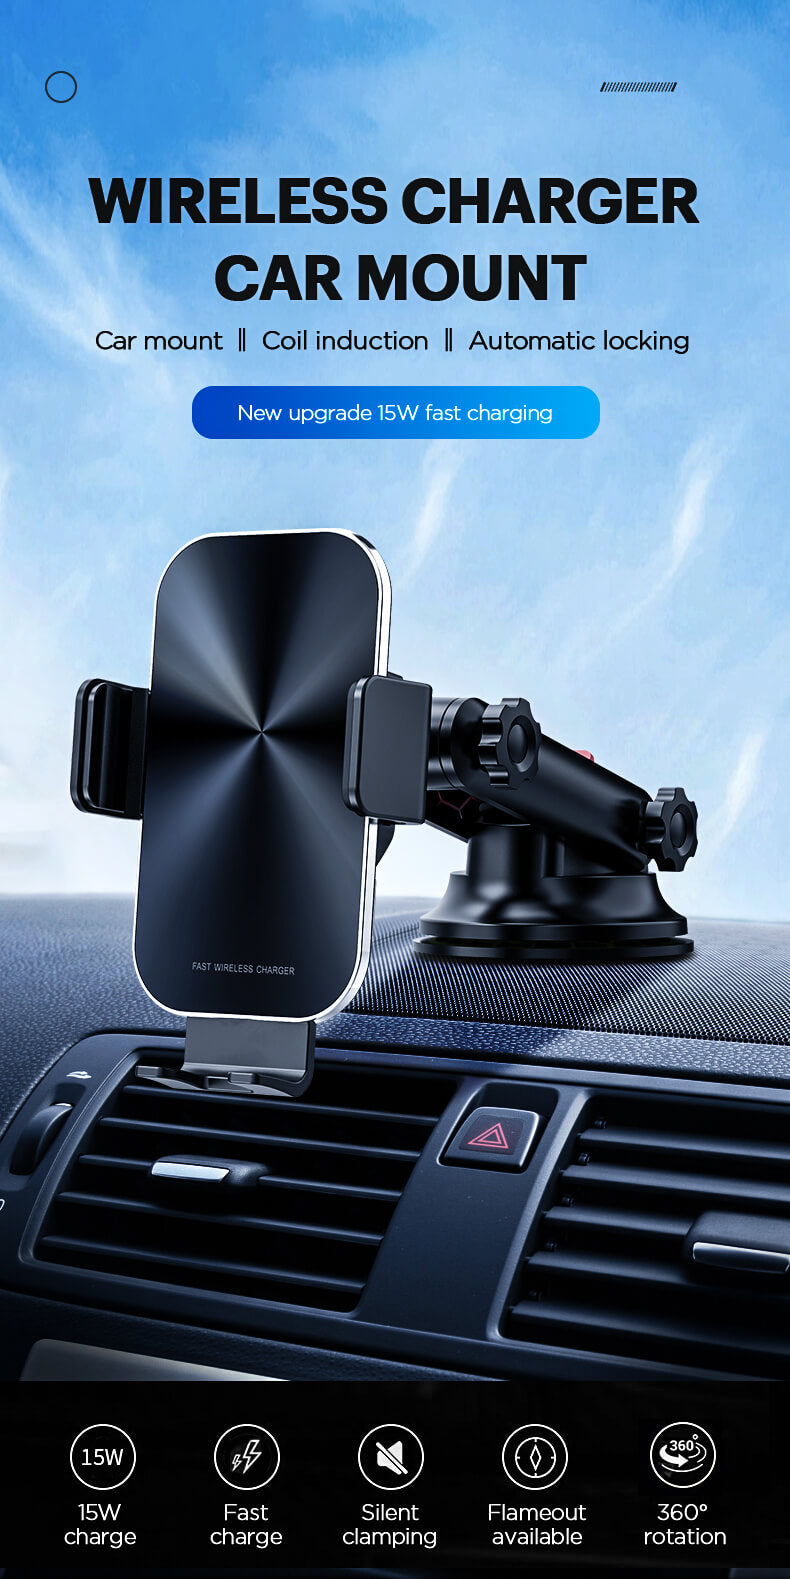 2020 fast wireless charging car mount